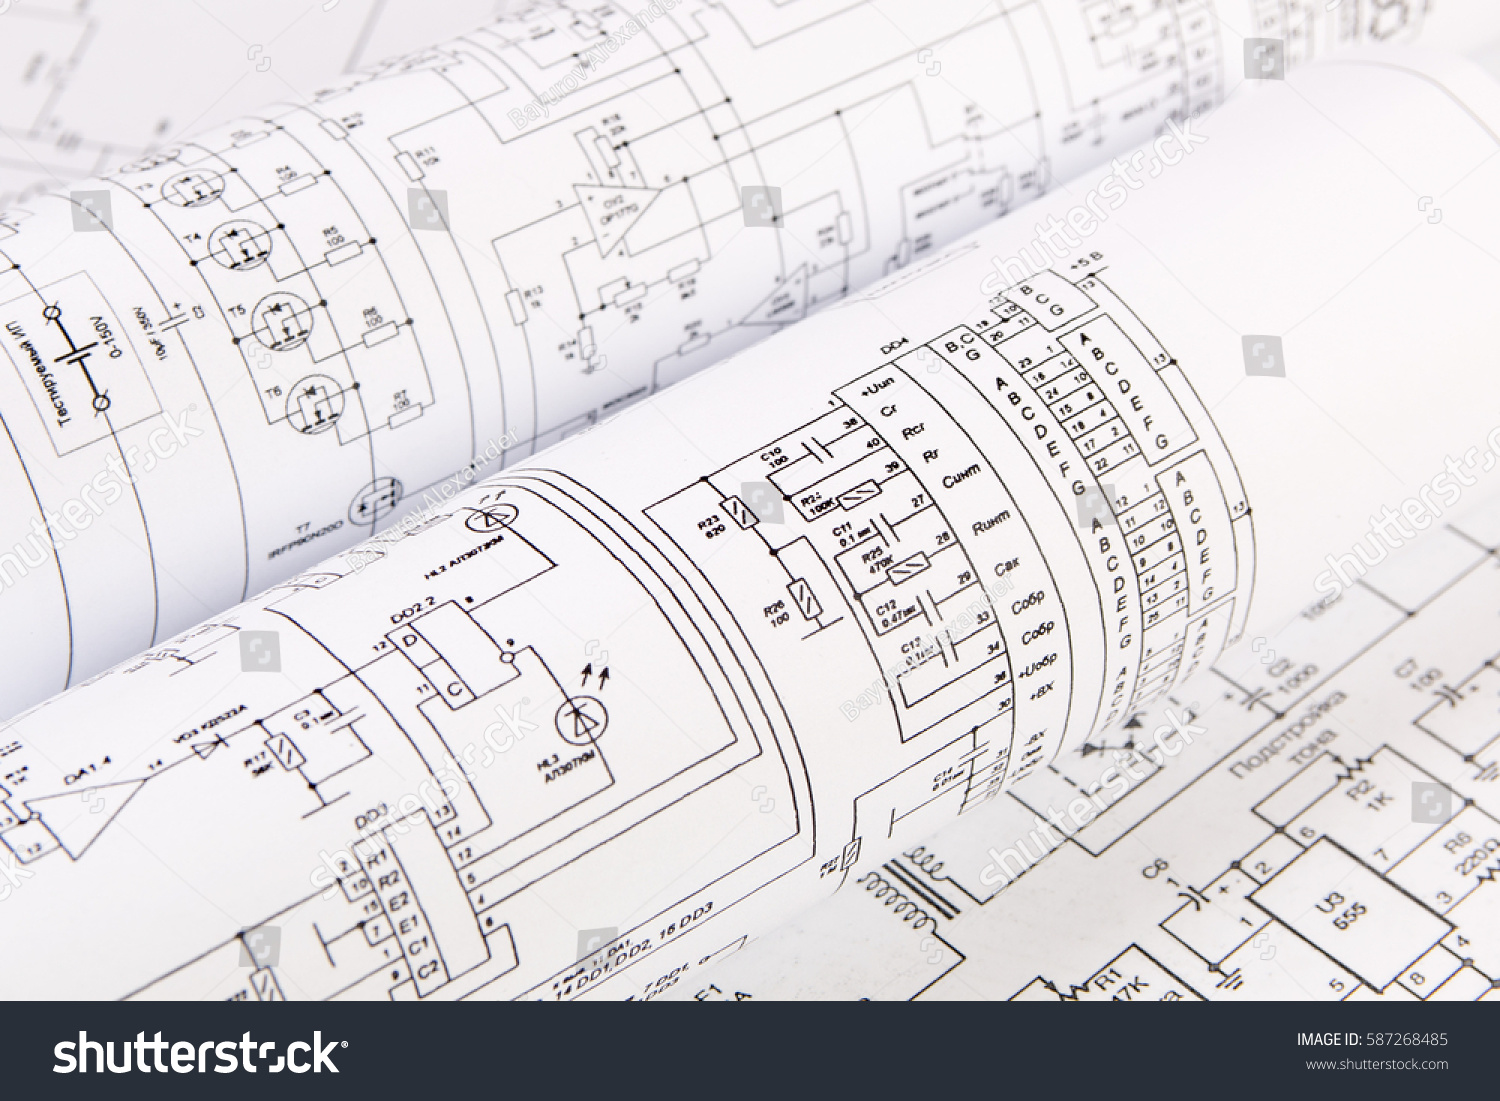 hight resolution of science technology and electronics electrical engineering drawings printing scientific development